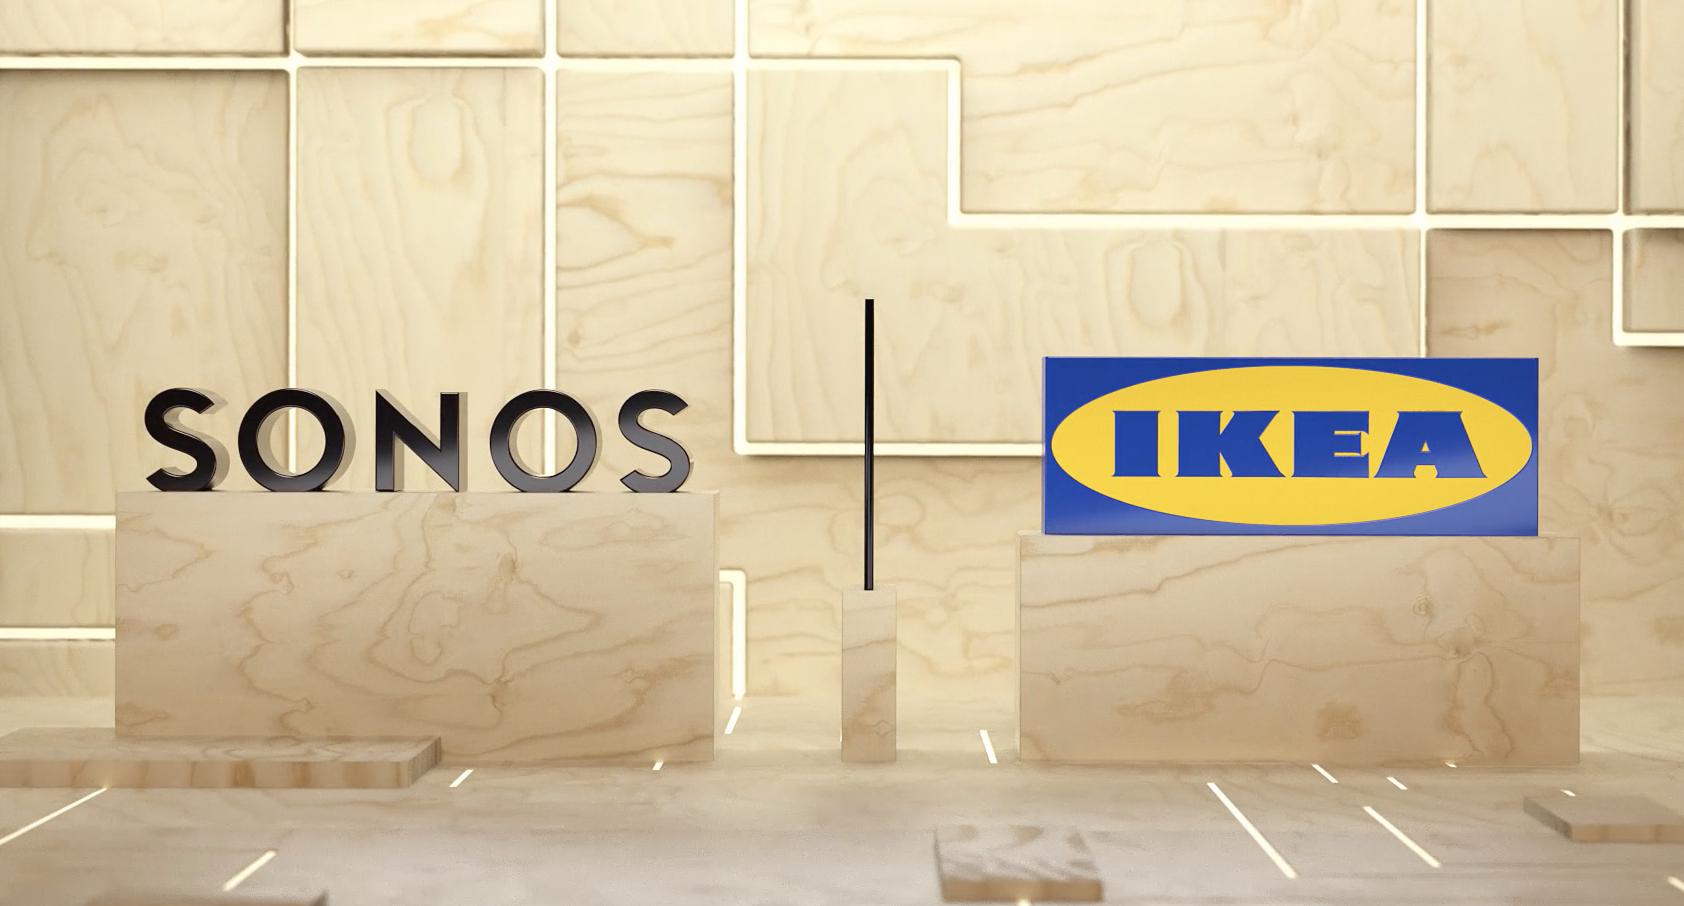 Sonos and Ikea are collaborating on sound products for the home